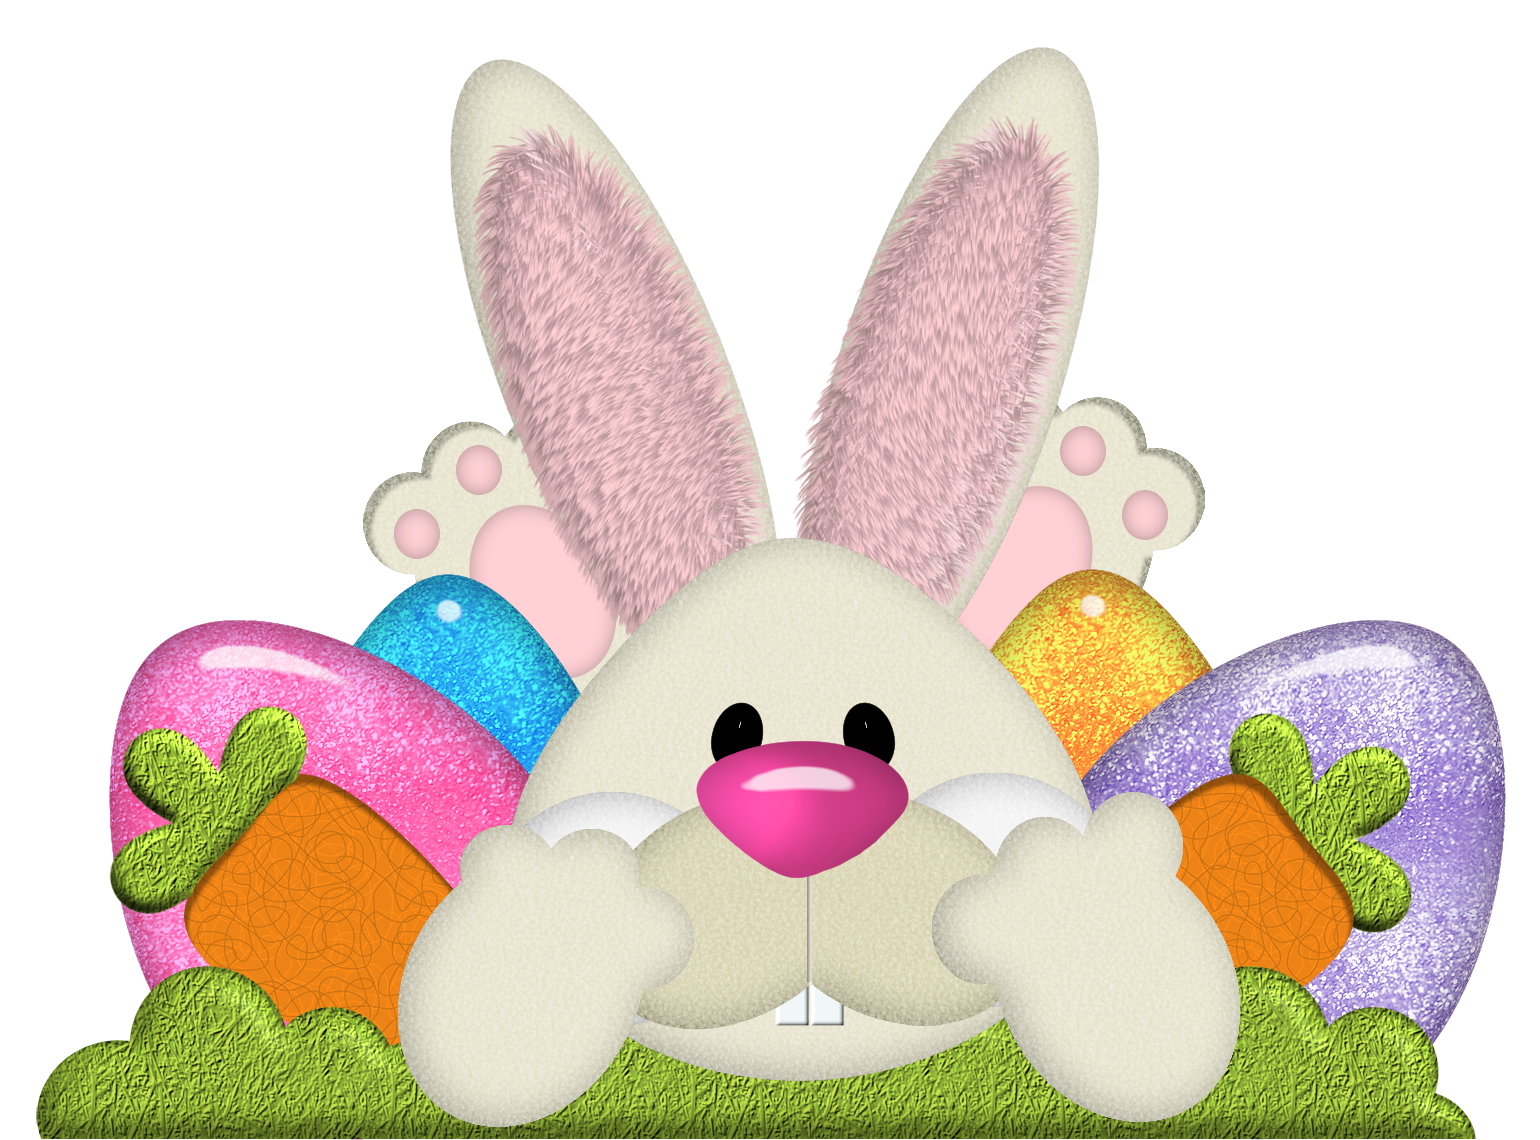 Easter Bunny with Eggs Transparent PNG Clipart | clipart (easter ... for Real Easter Bunny With Eggs  150ifm